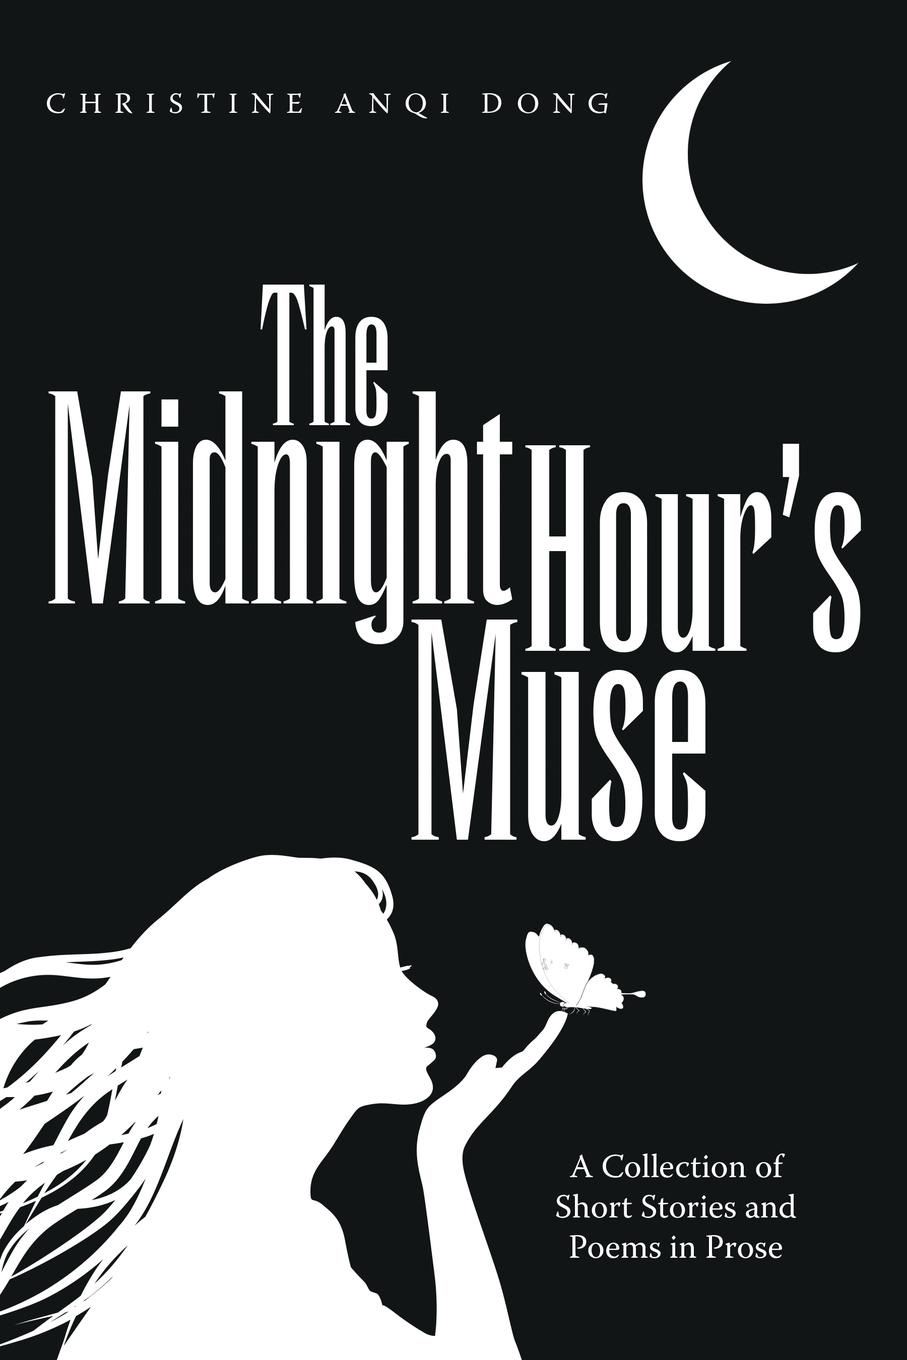 Christine Anqi Dong The Midnight Hour.s Muse. A Collection of Short Stories and Poems in Prose